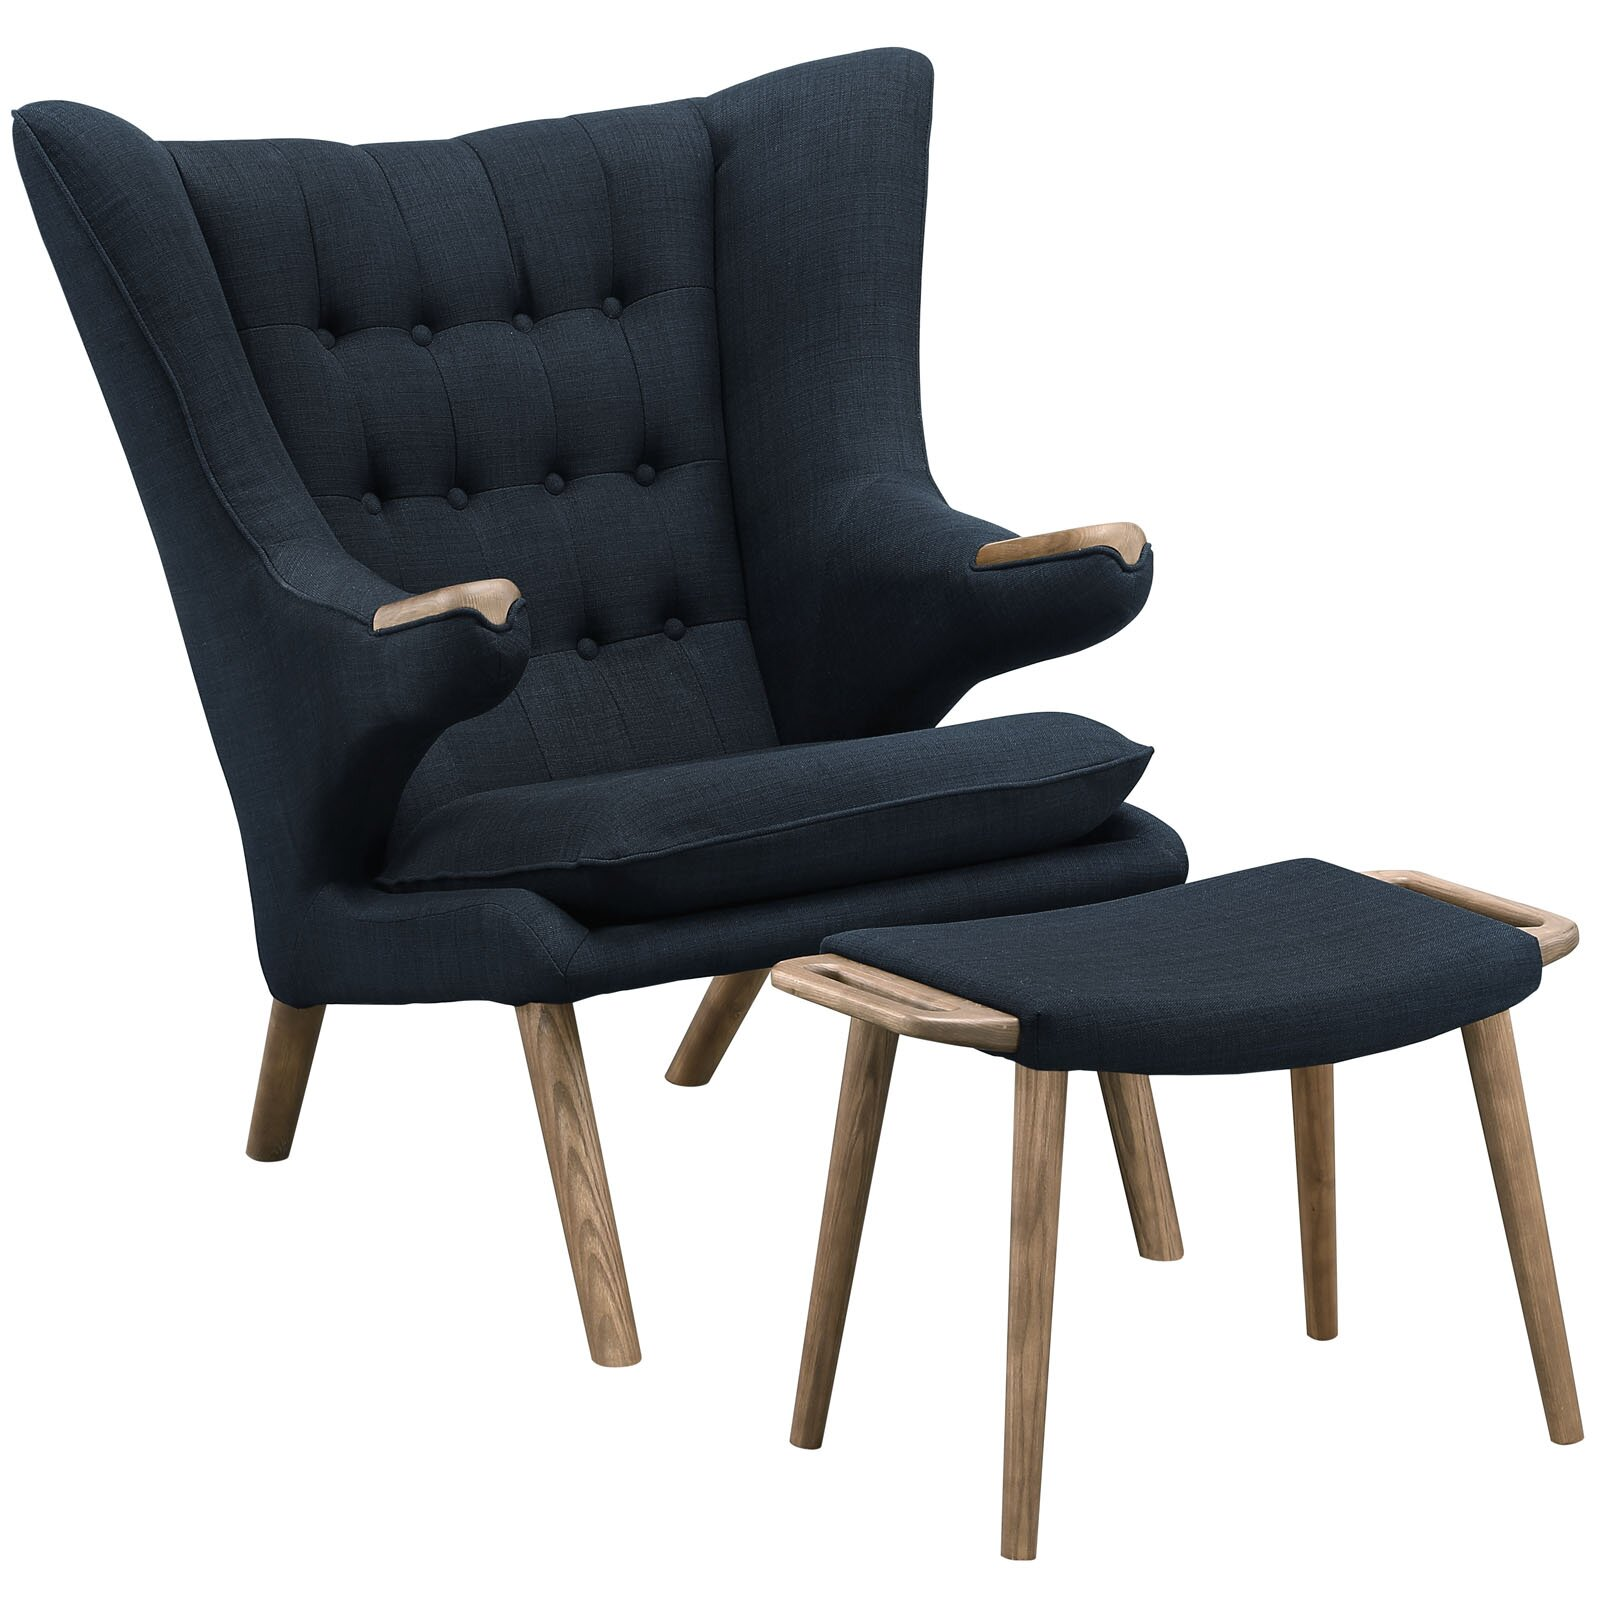 modway bear lounge chair and ottoman set reviews. Black Bedroom Furniture Sets. Home Design Ideas